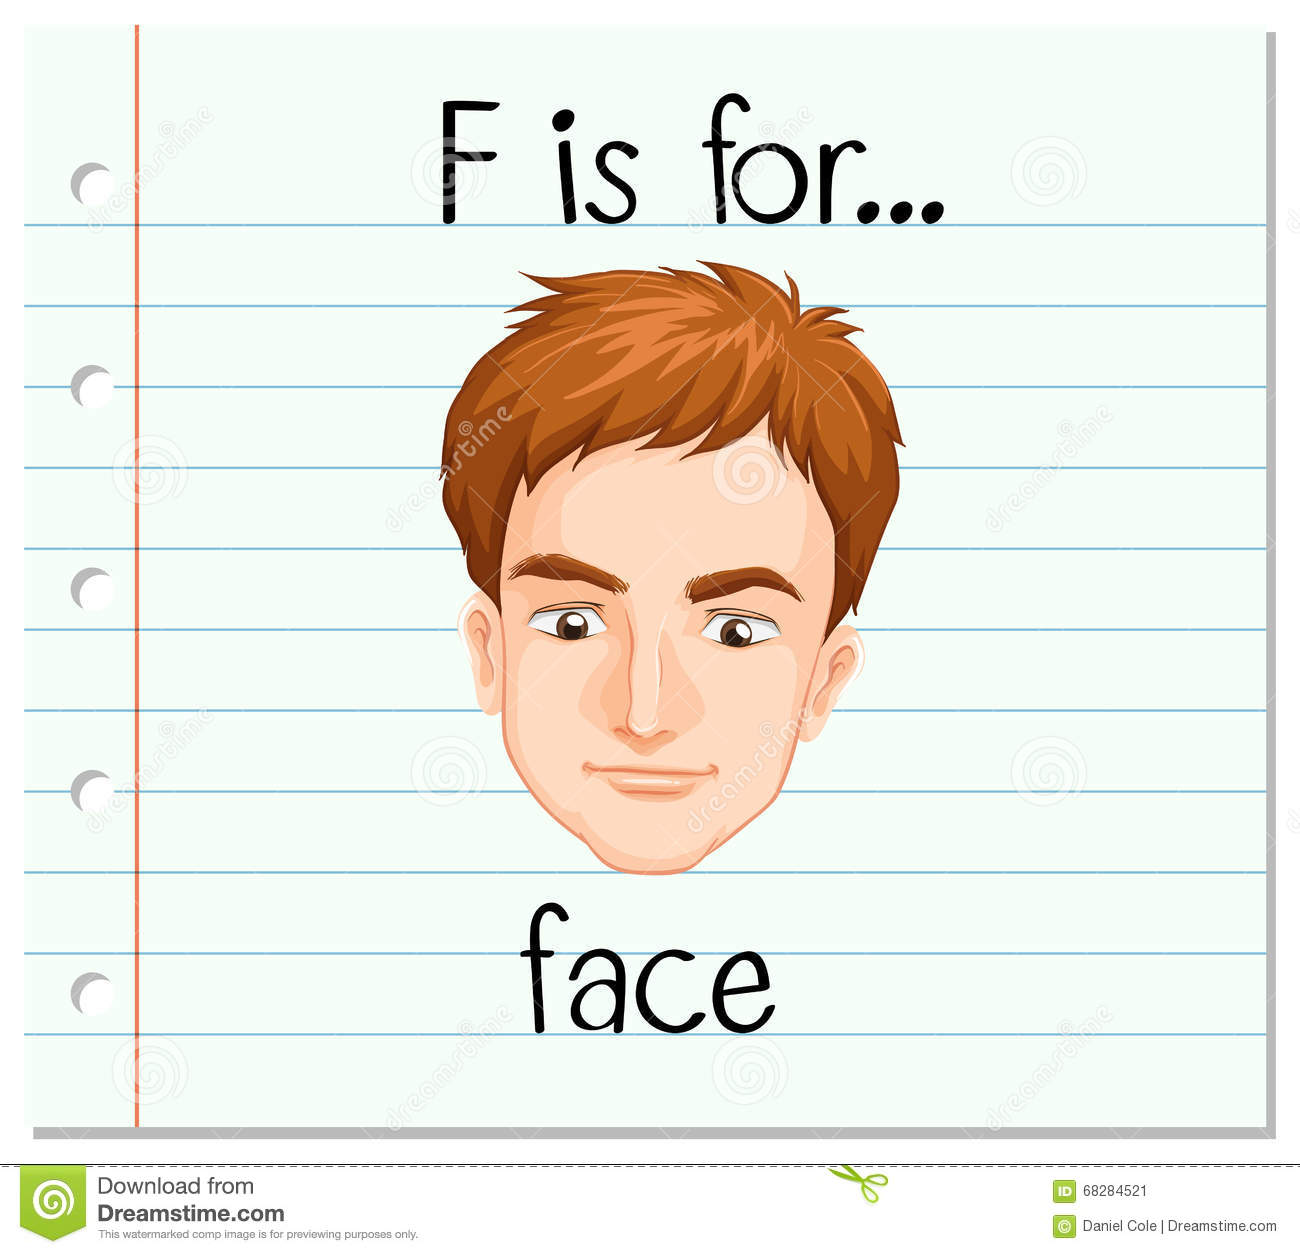 Free Worksheets xl worksheet : Flashcard Letter F Is For Face Stock Vector - Image: 68284521